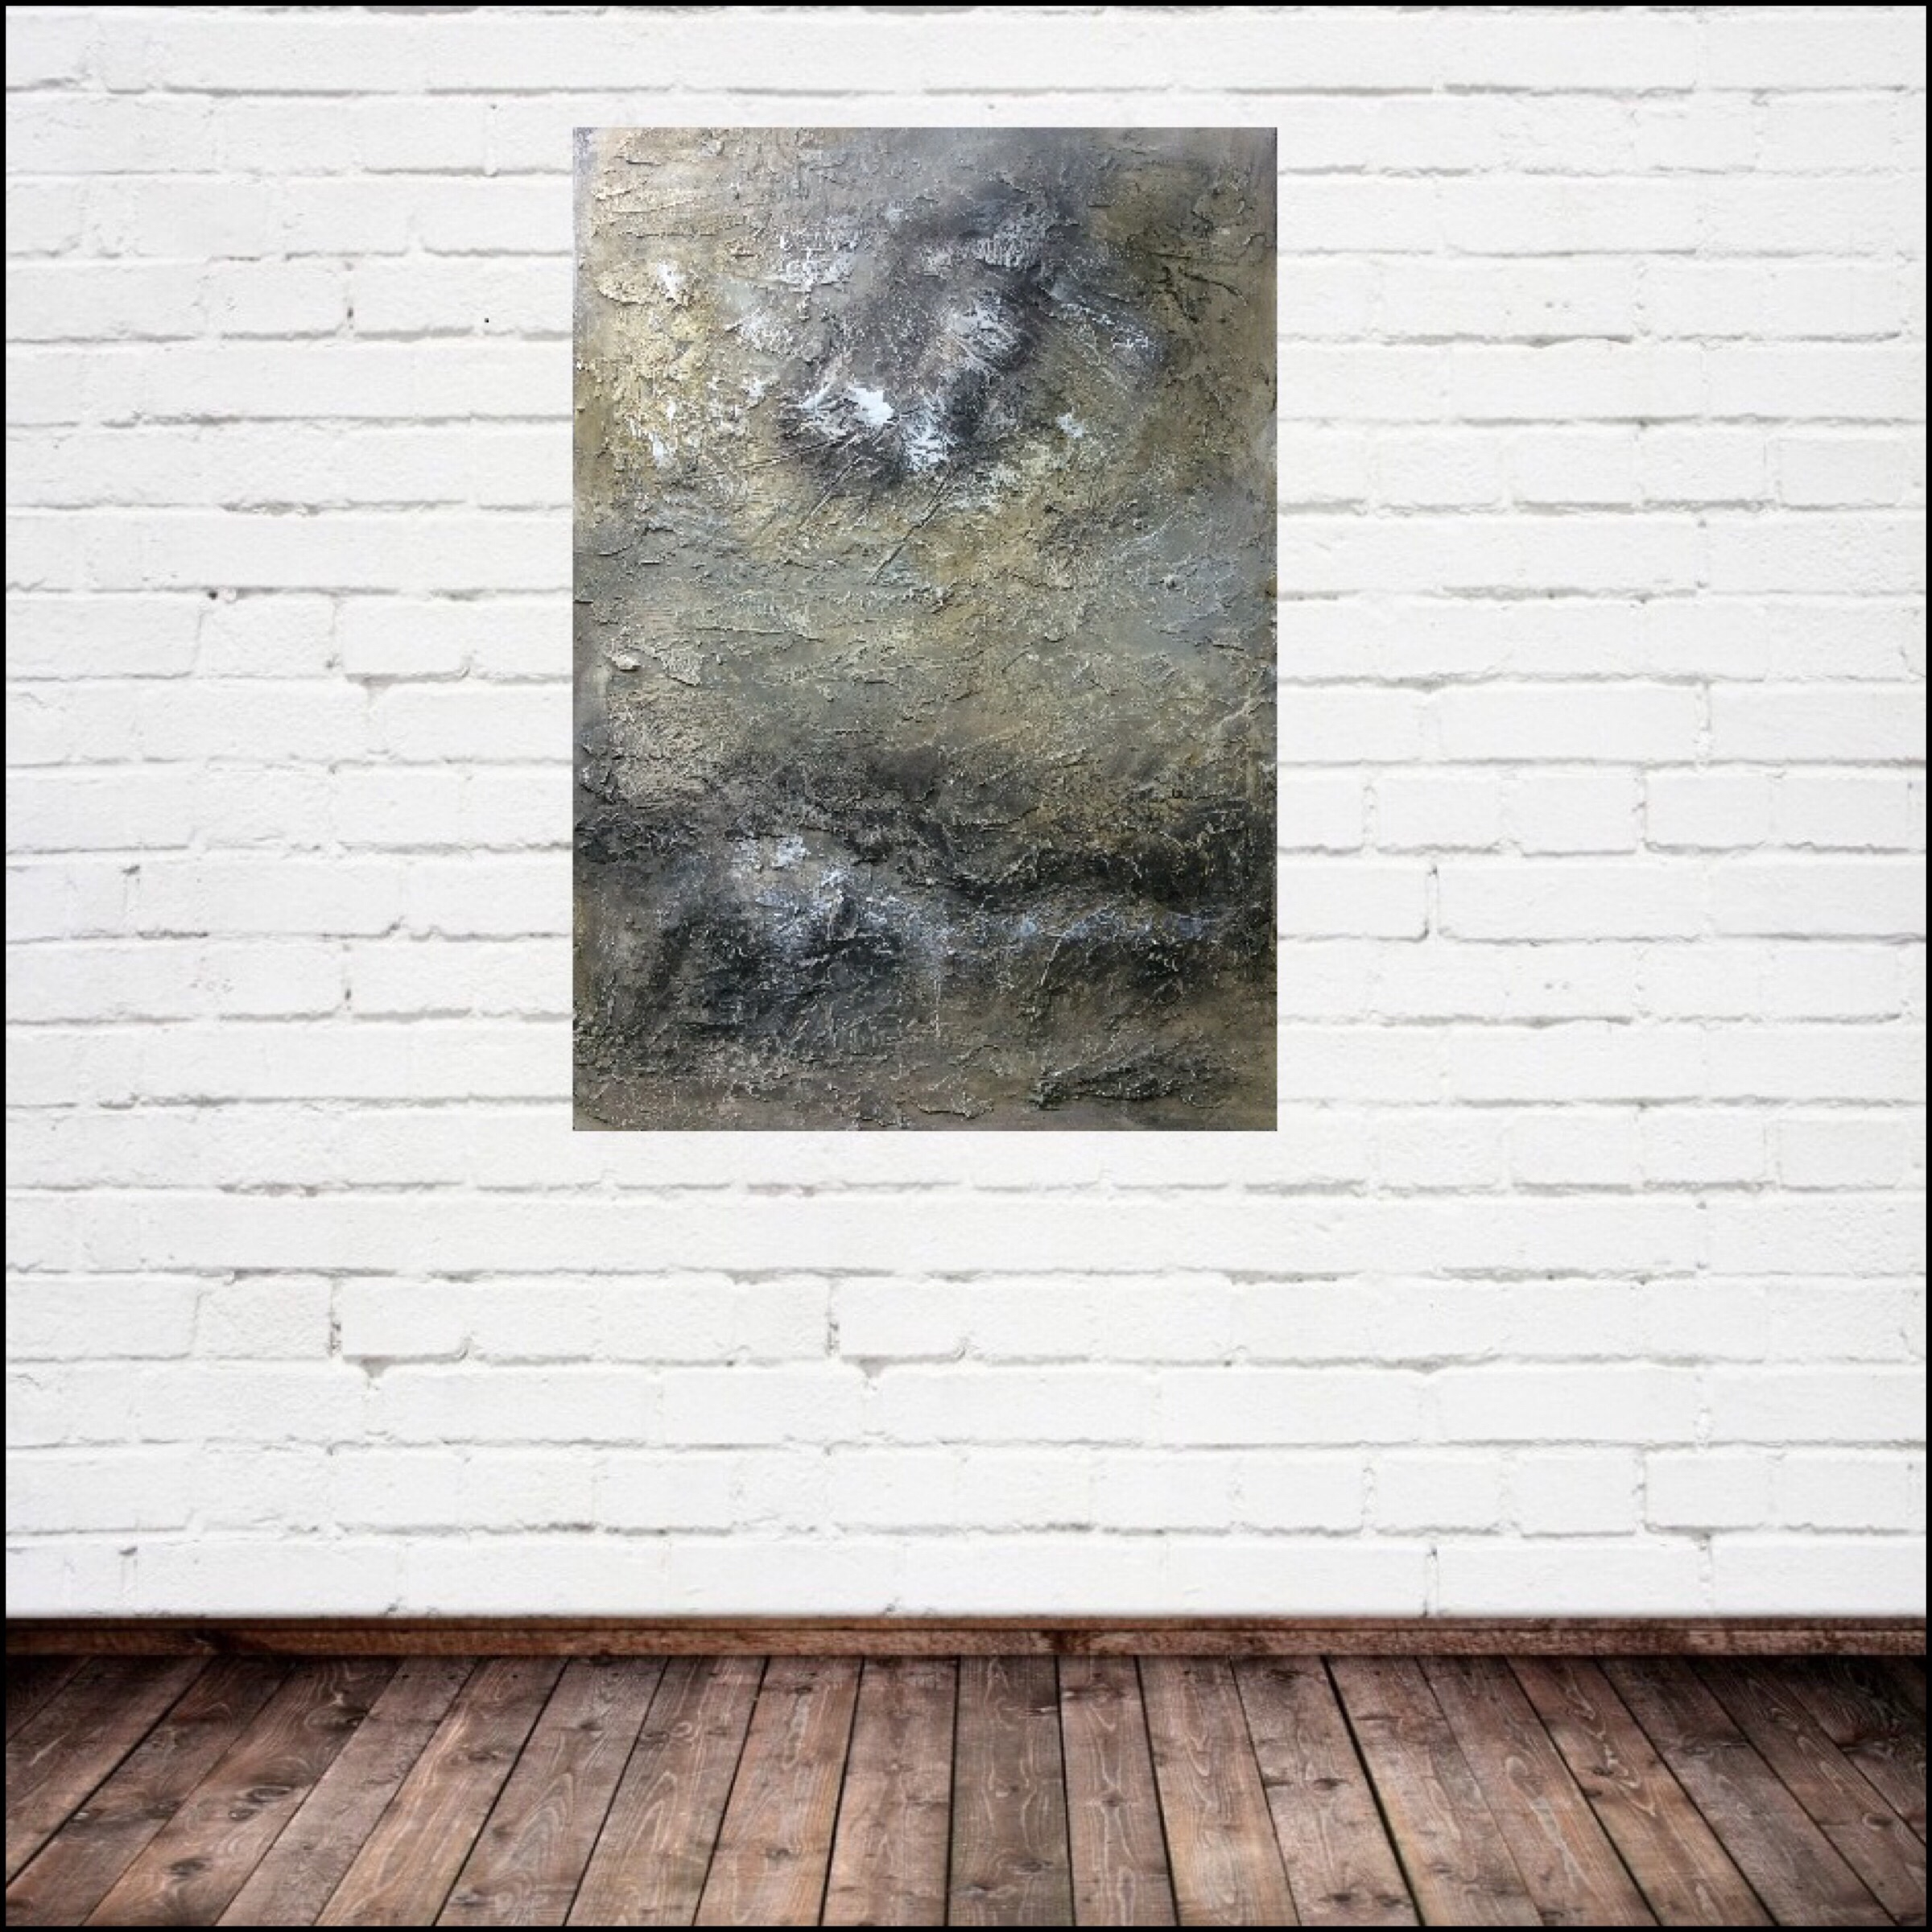 Interior design: Textured abstract painting in neutral colors